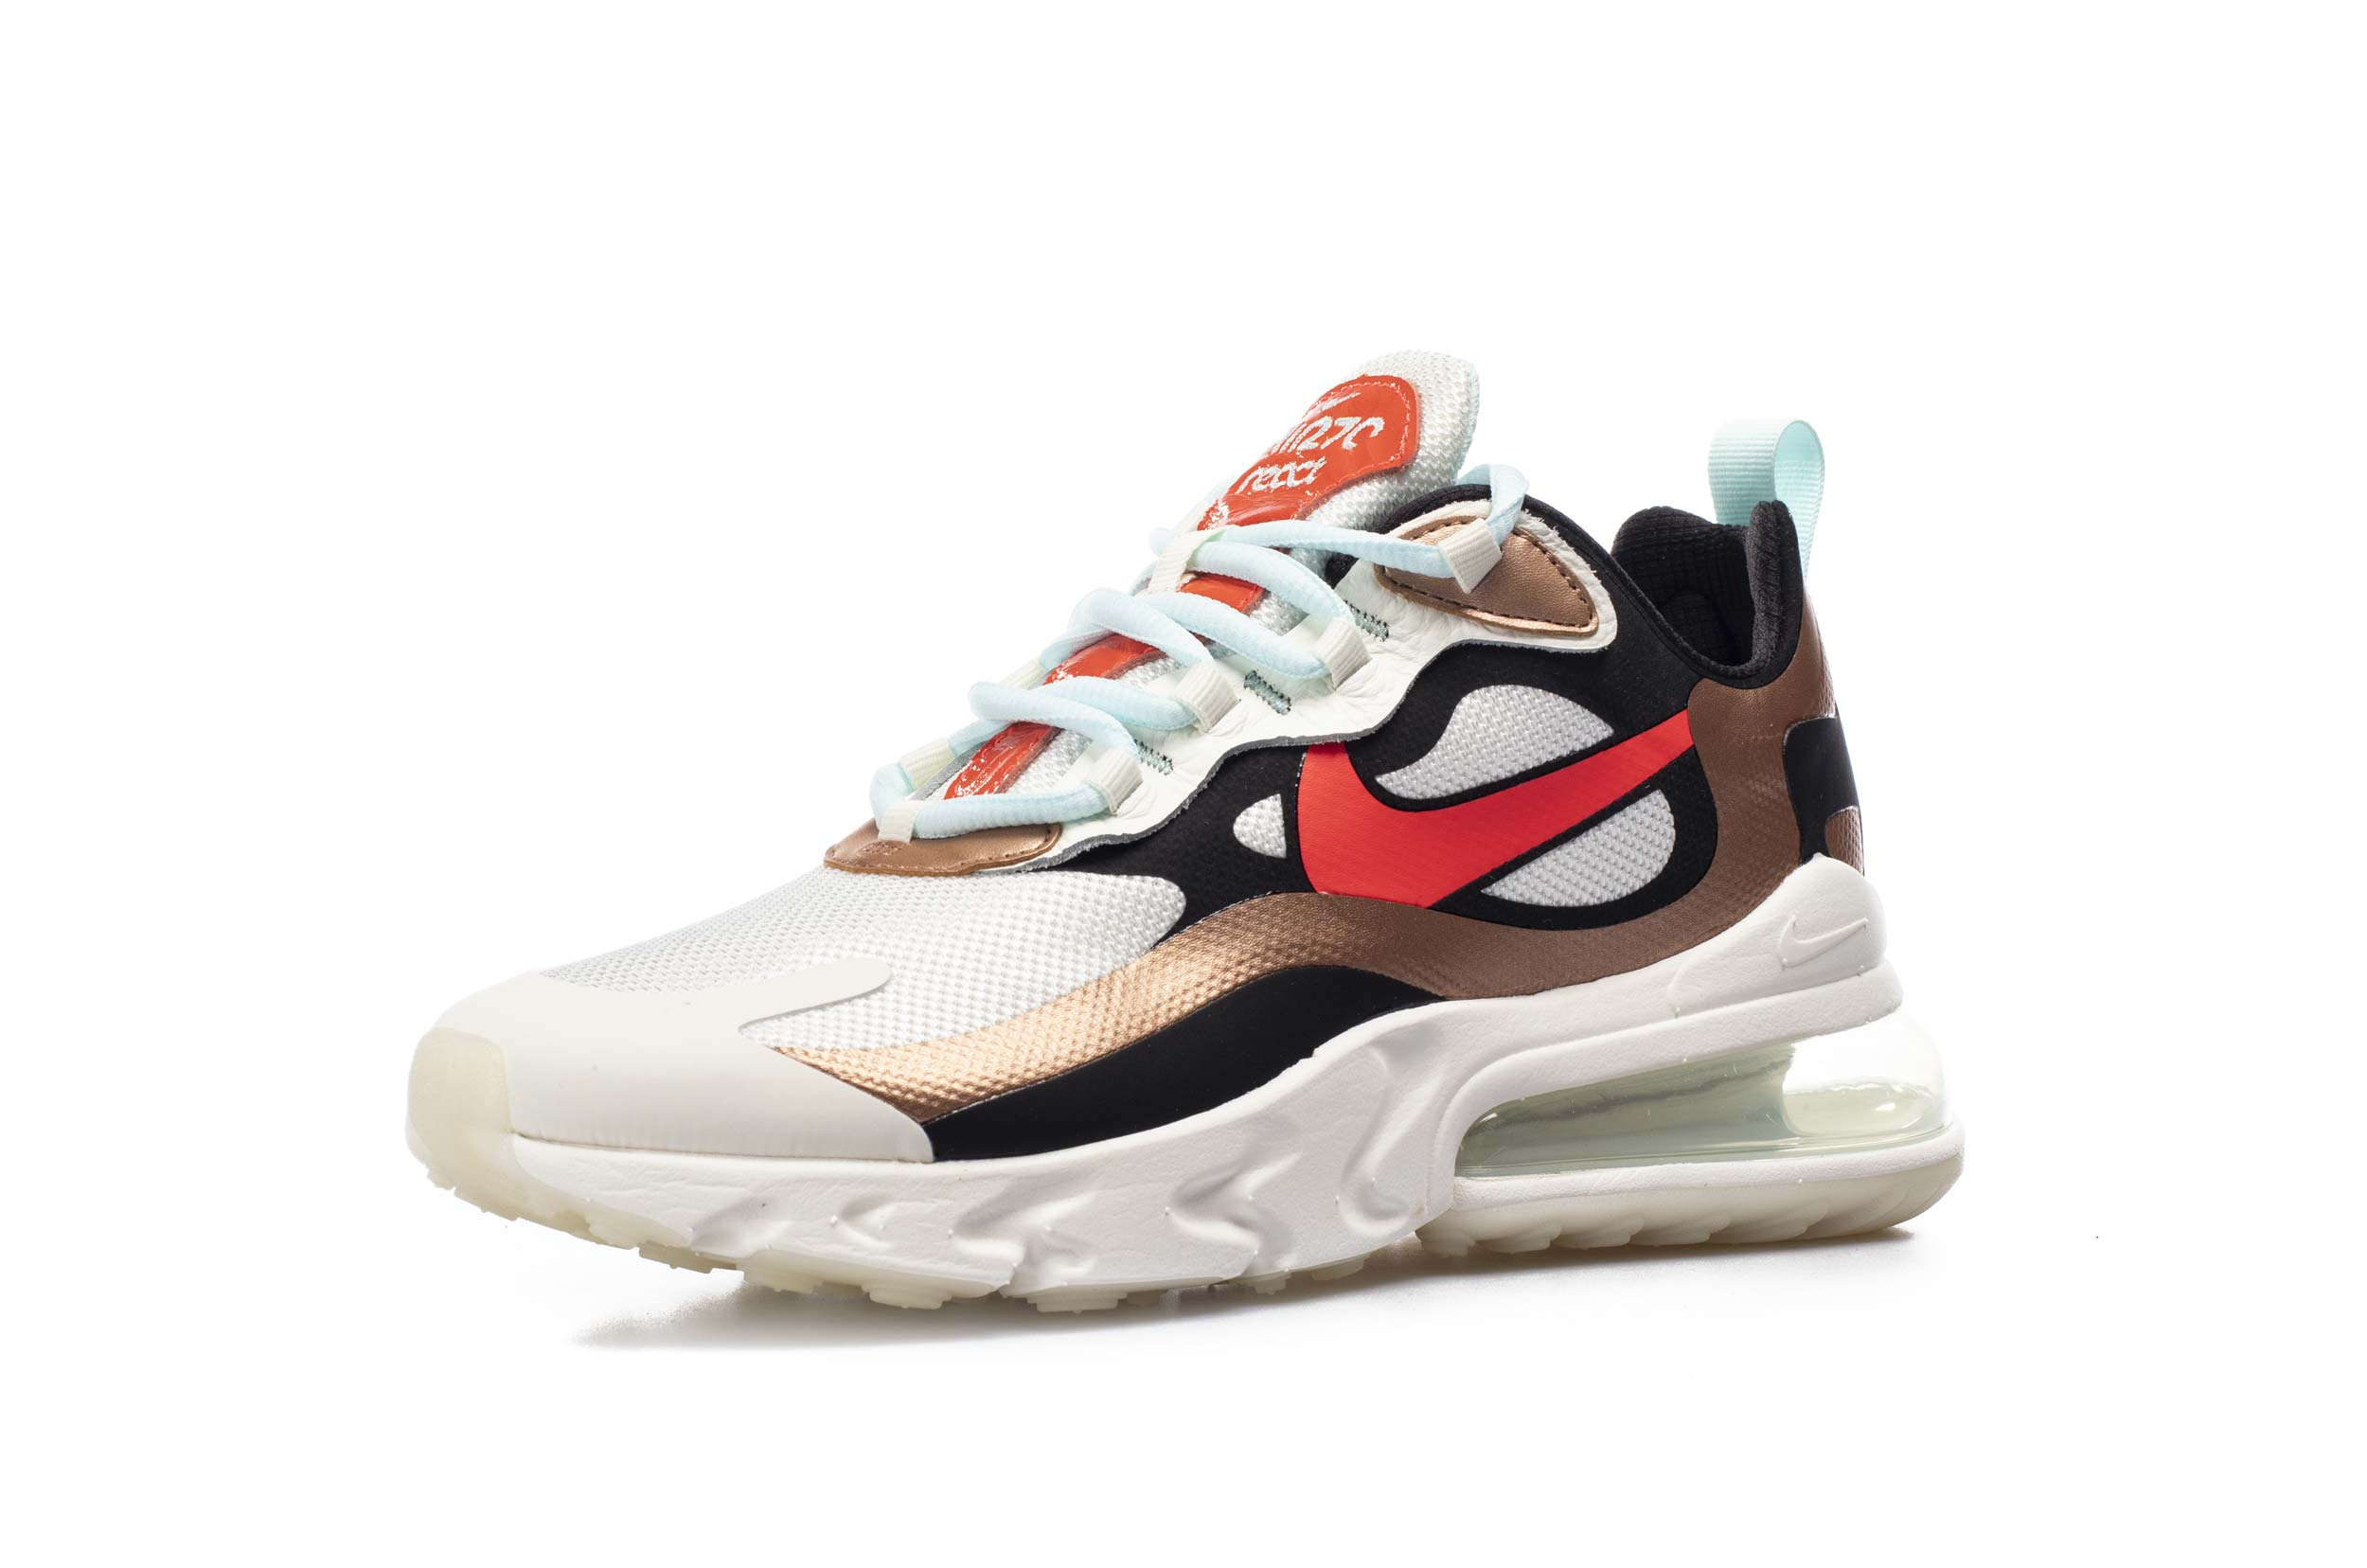 NIKE AIR MAX 270 REACT CT3428-100 Πολύχρωμο